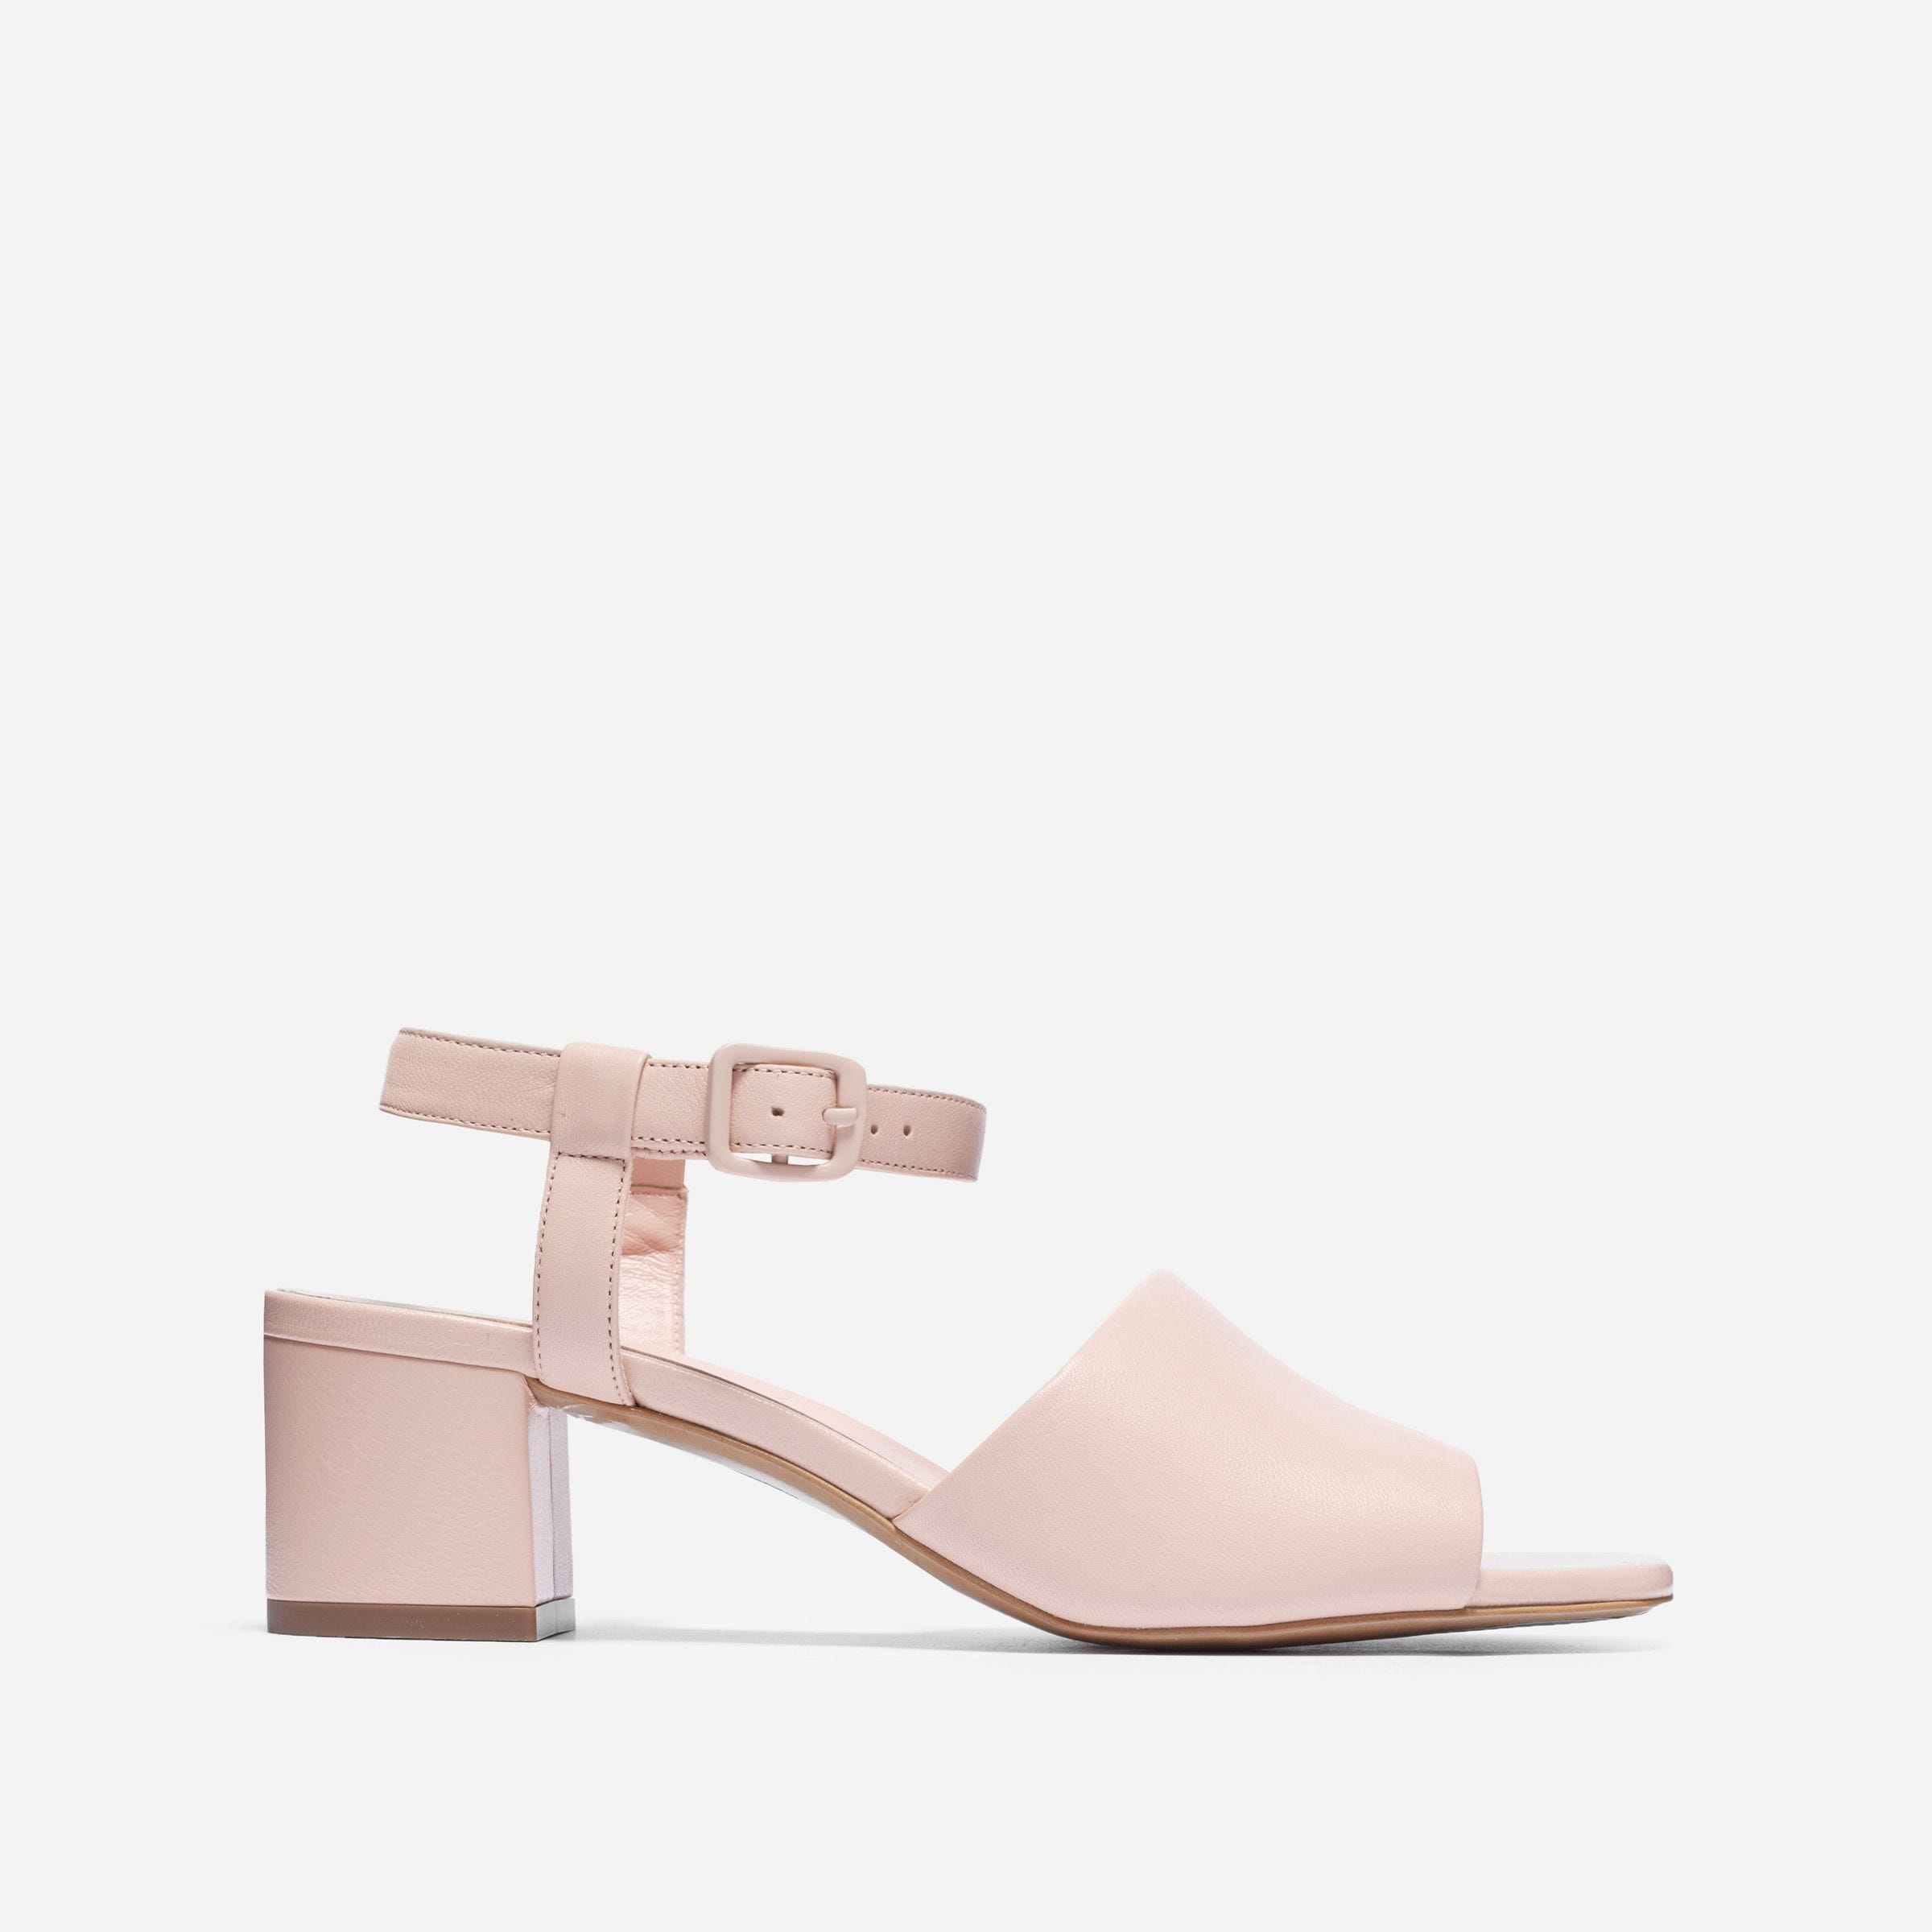 a78605ef520 Best Pastel Colored Sandals To Buy This Spring 2019